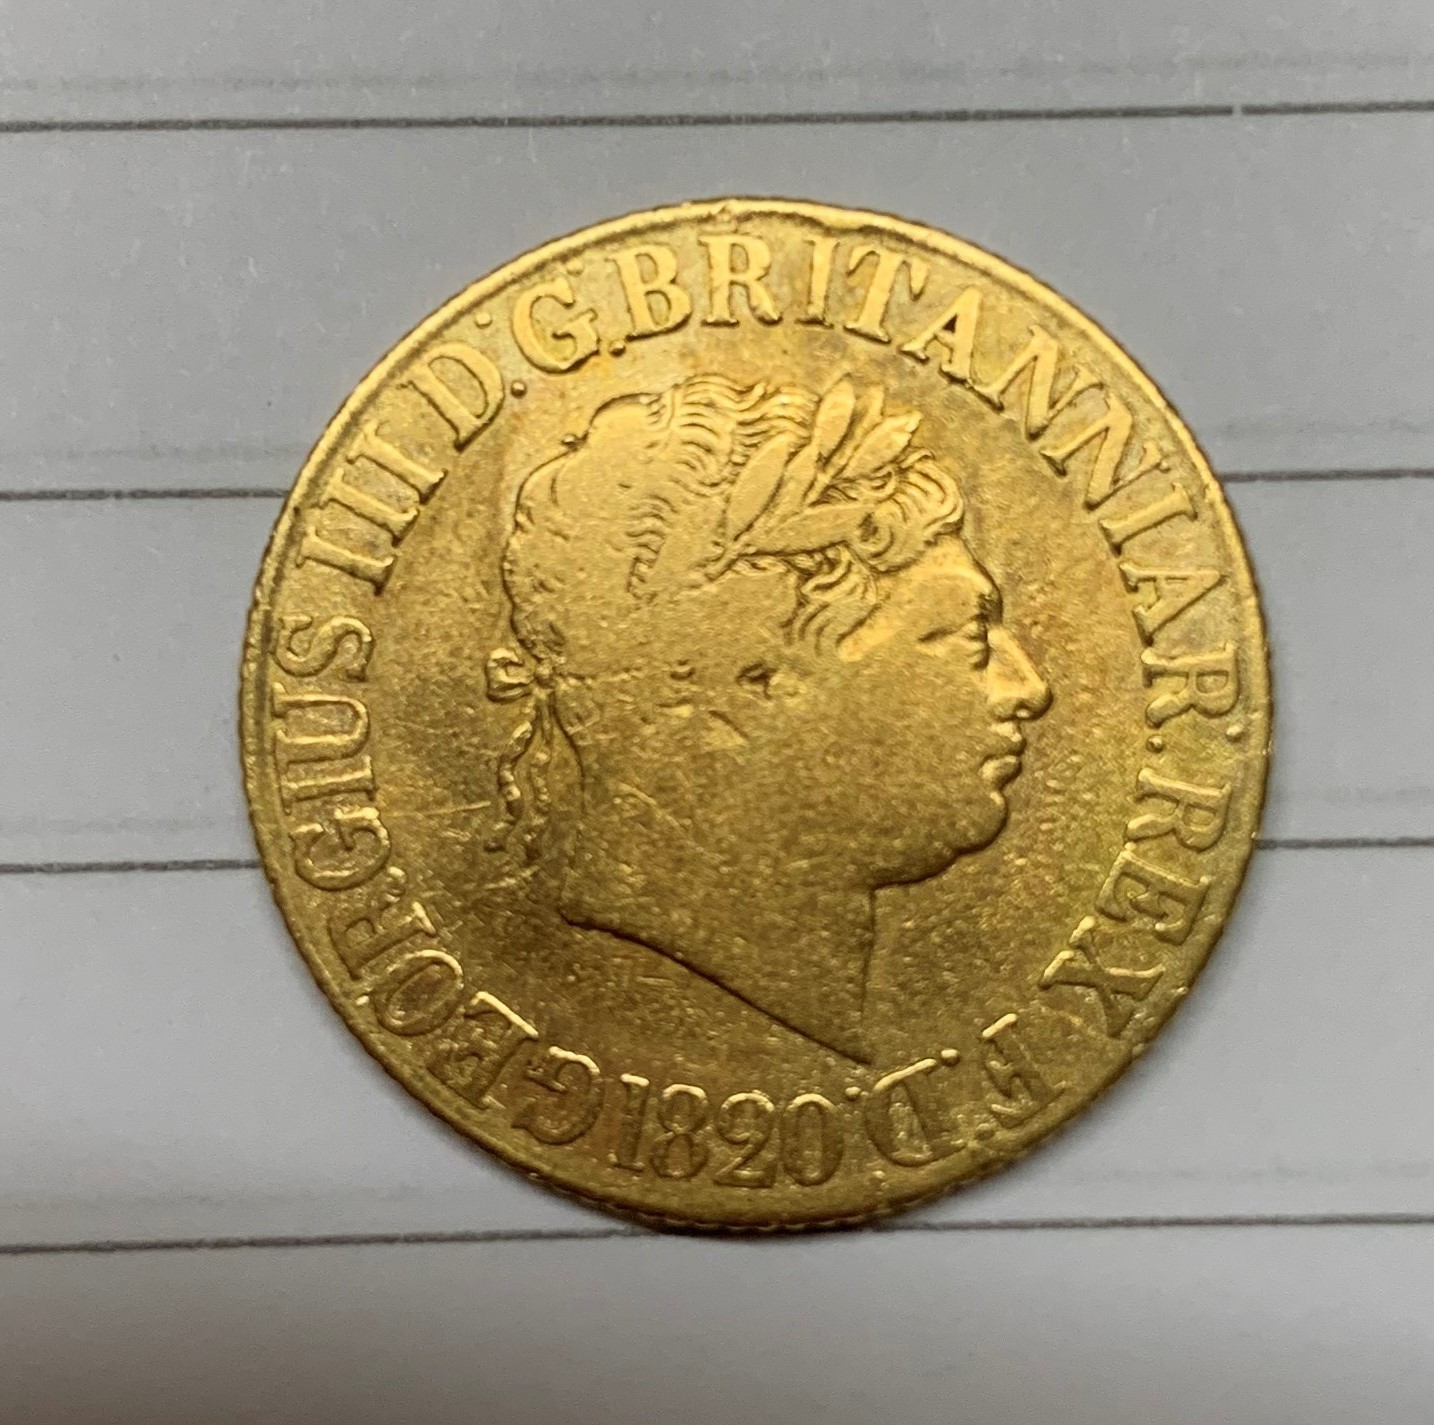 George III gold sovereign, dated 1820, weight 8g. - Image 4 of 4